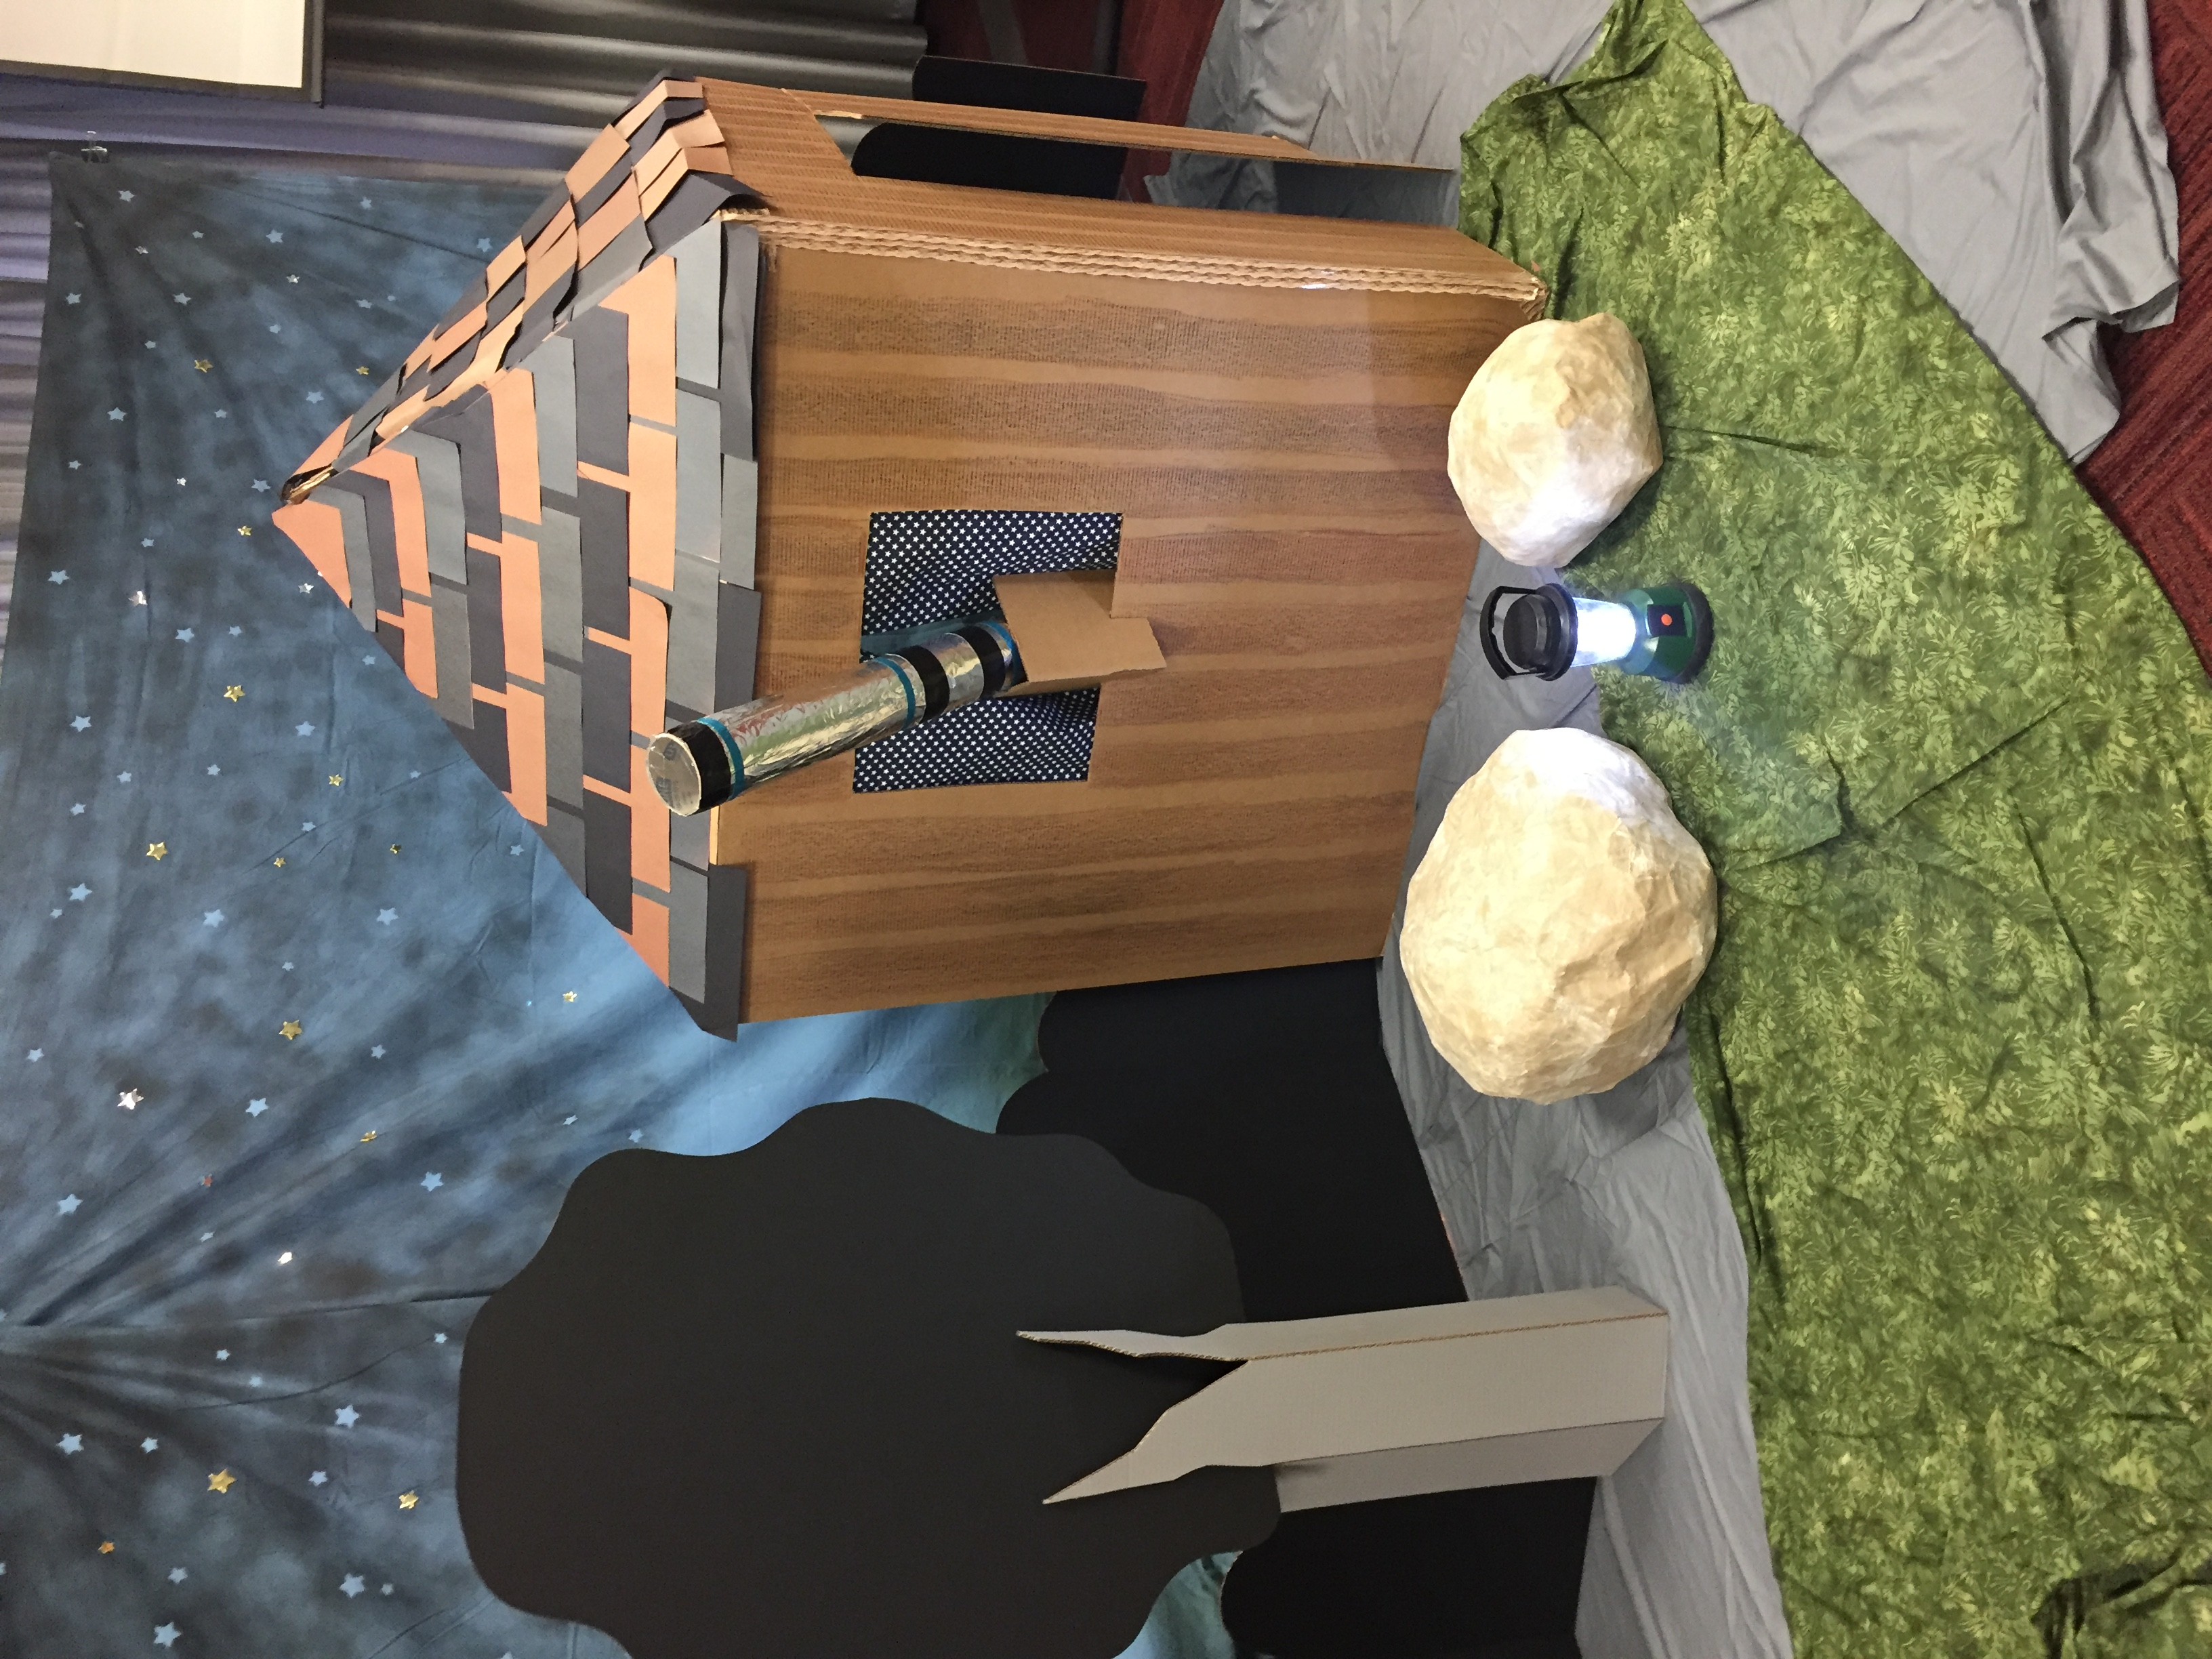 Church decorations for january - Today Would Be A Great Day To Make Plans To Join Mark And Lifeway S Vbs Team In January At Ridgecrest Conference Center In Black Mountain North Carolina